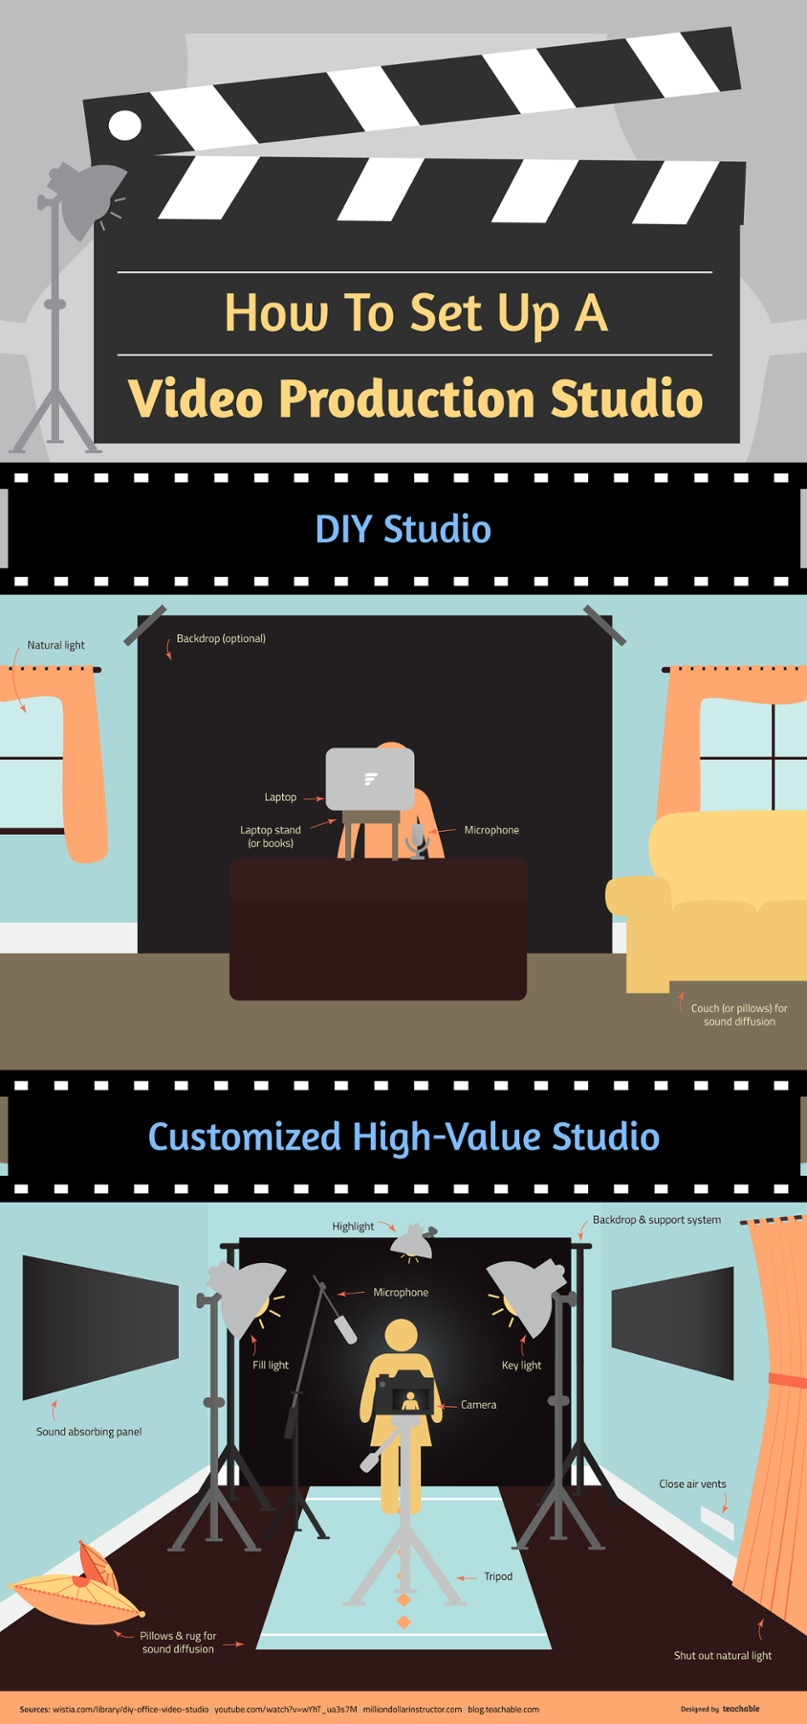 Creating engaging videos at home doesn't have to be expensive or technical, here are our tips for an at-home studio set up that you can DIY yourself and list of high ROI equipment.